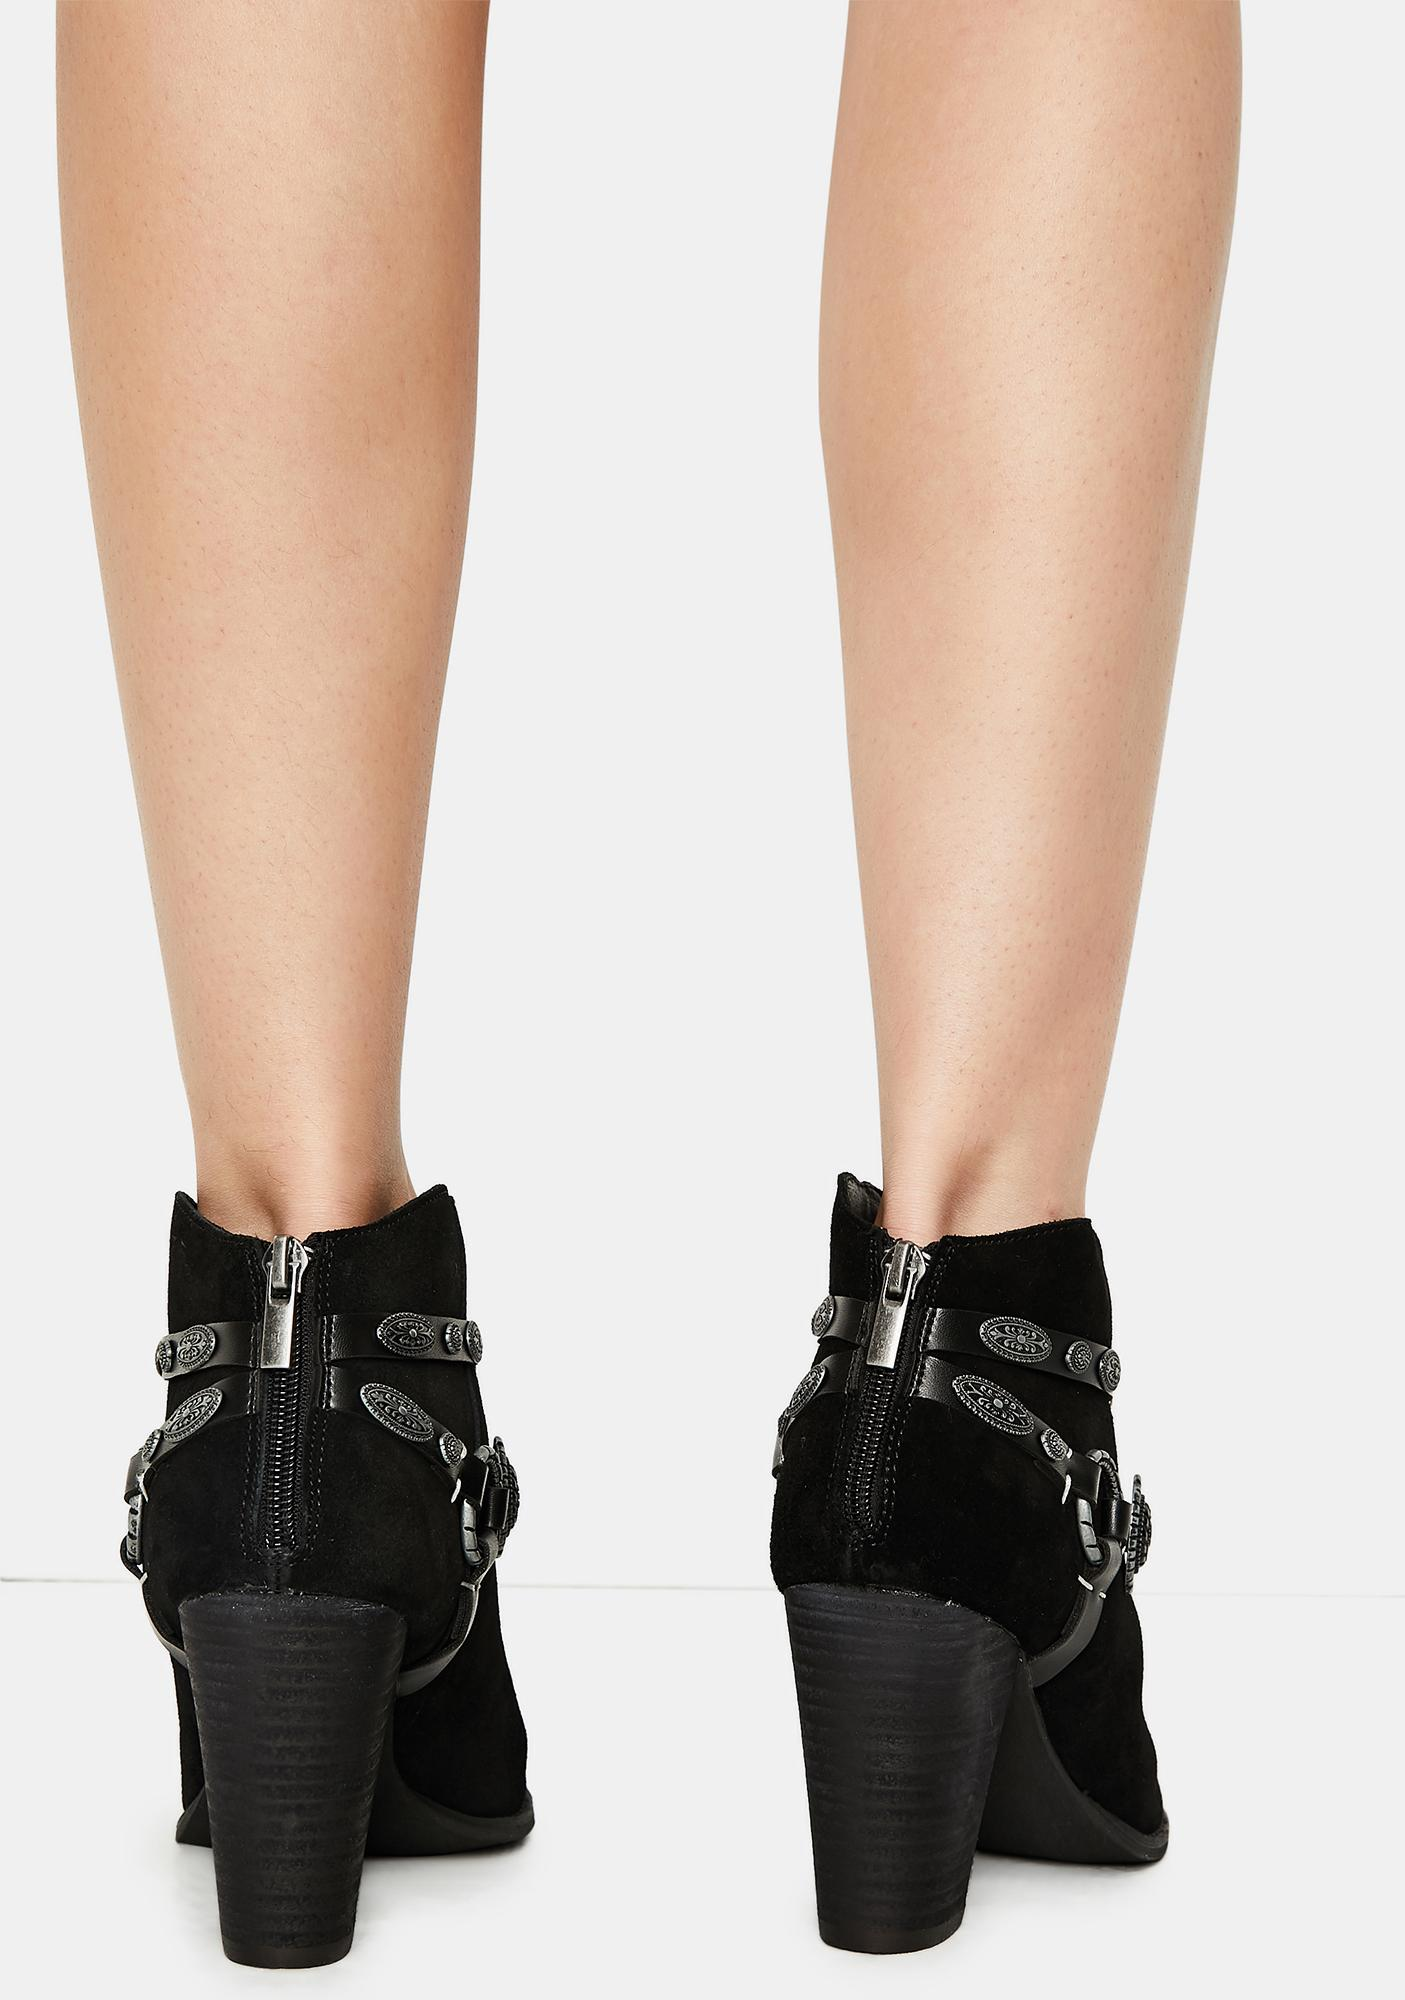 Volatile Shoes Tulsa Ankle Boots